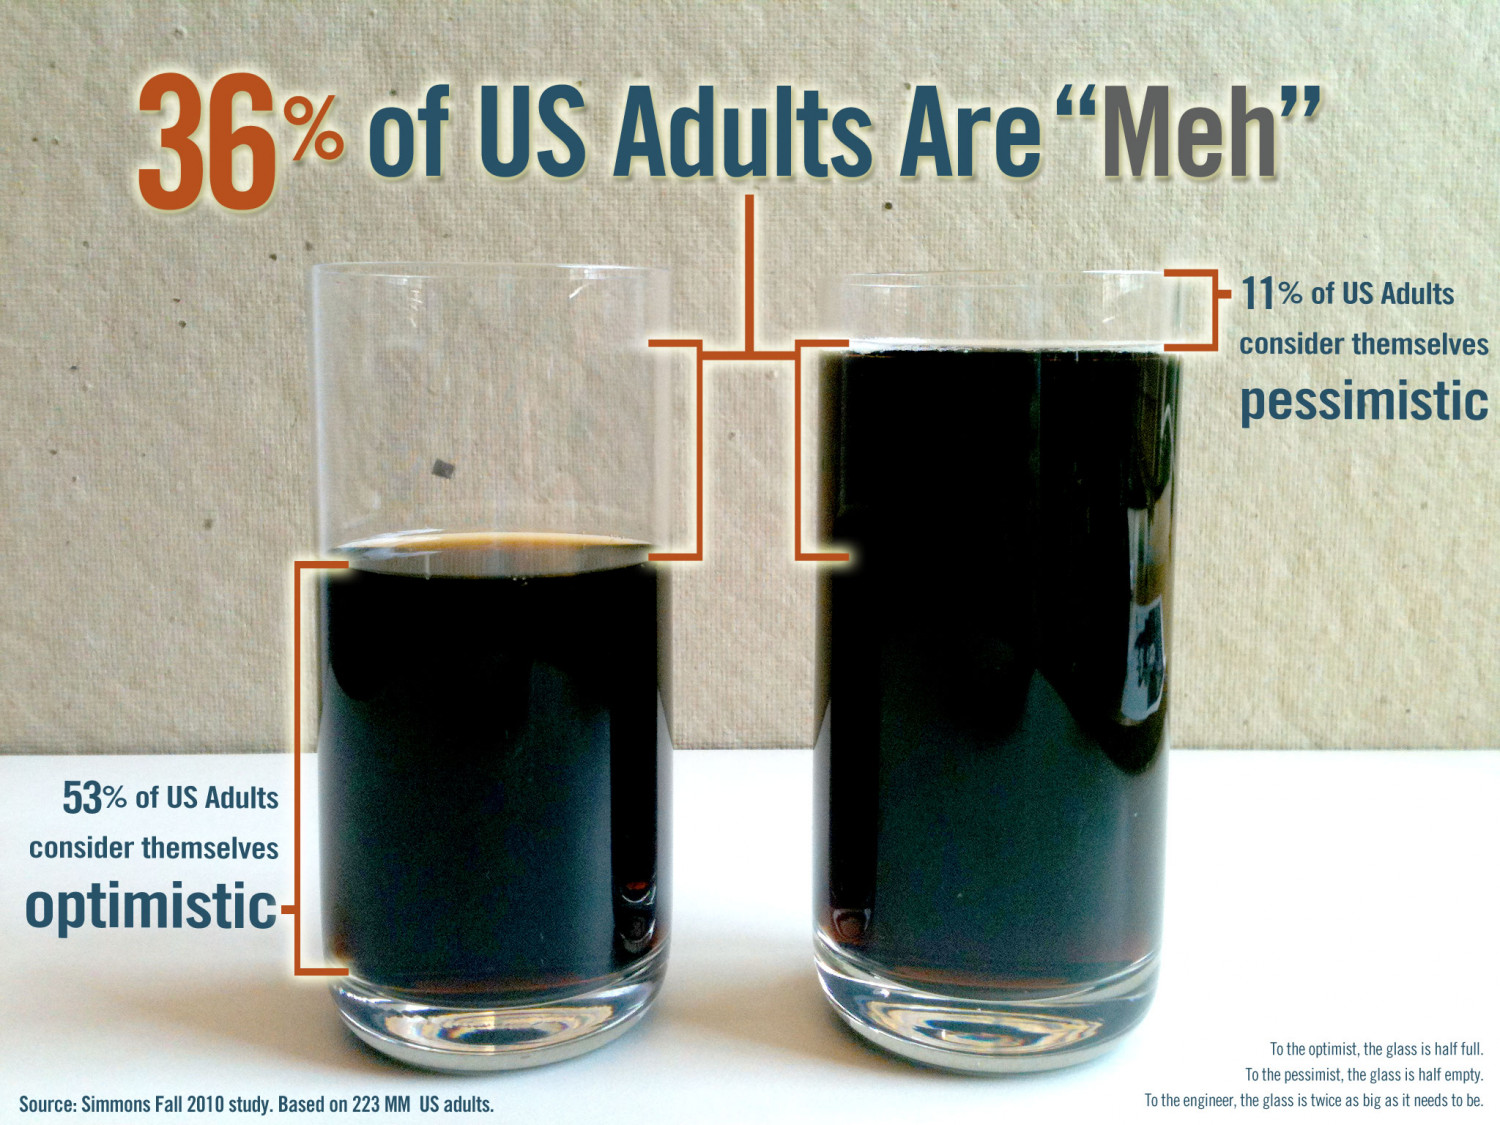 """36% of US Adults are """"Meh"""" Infographic"""